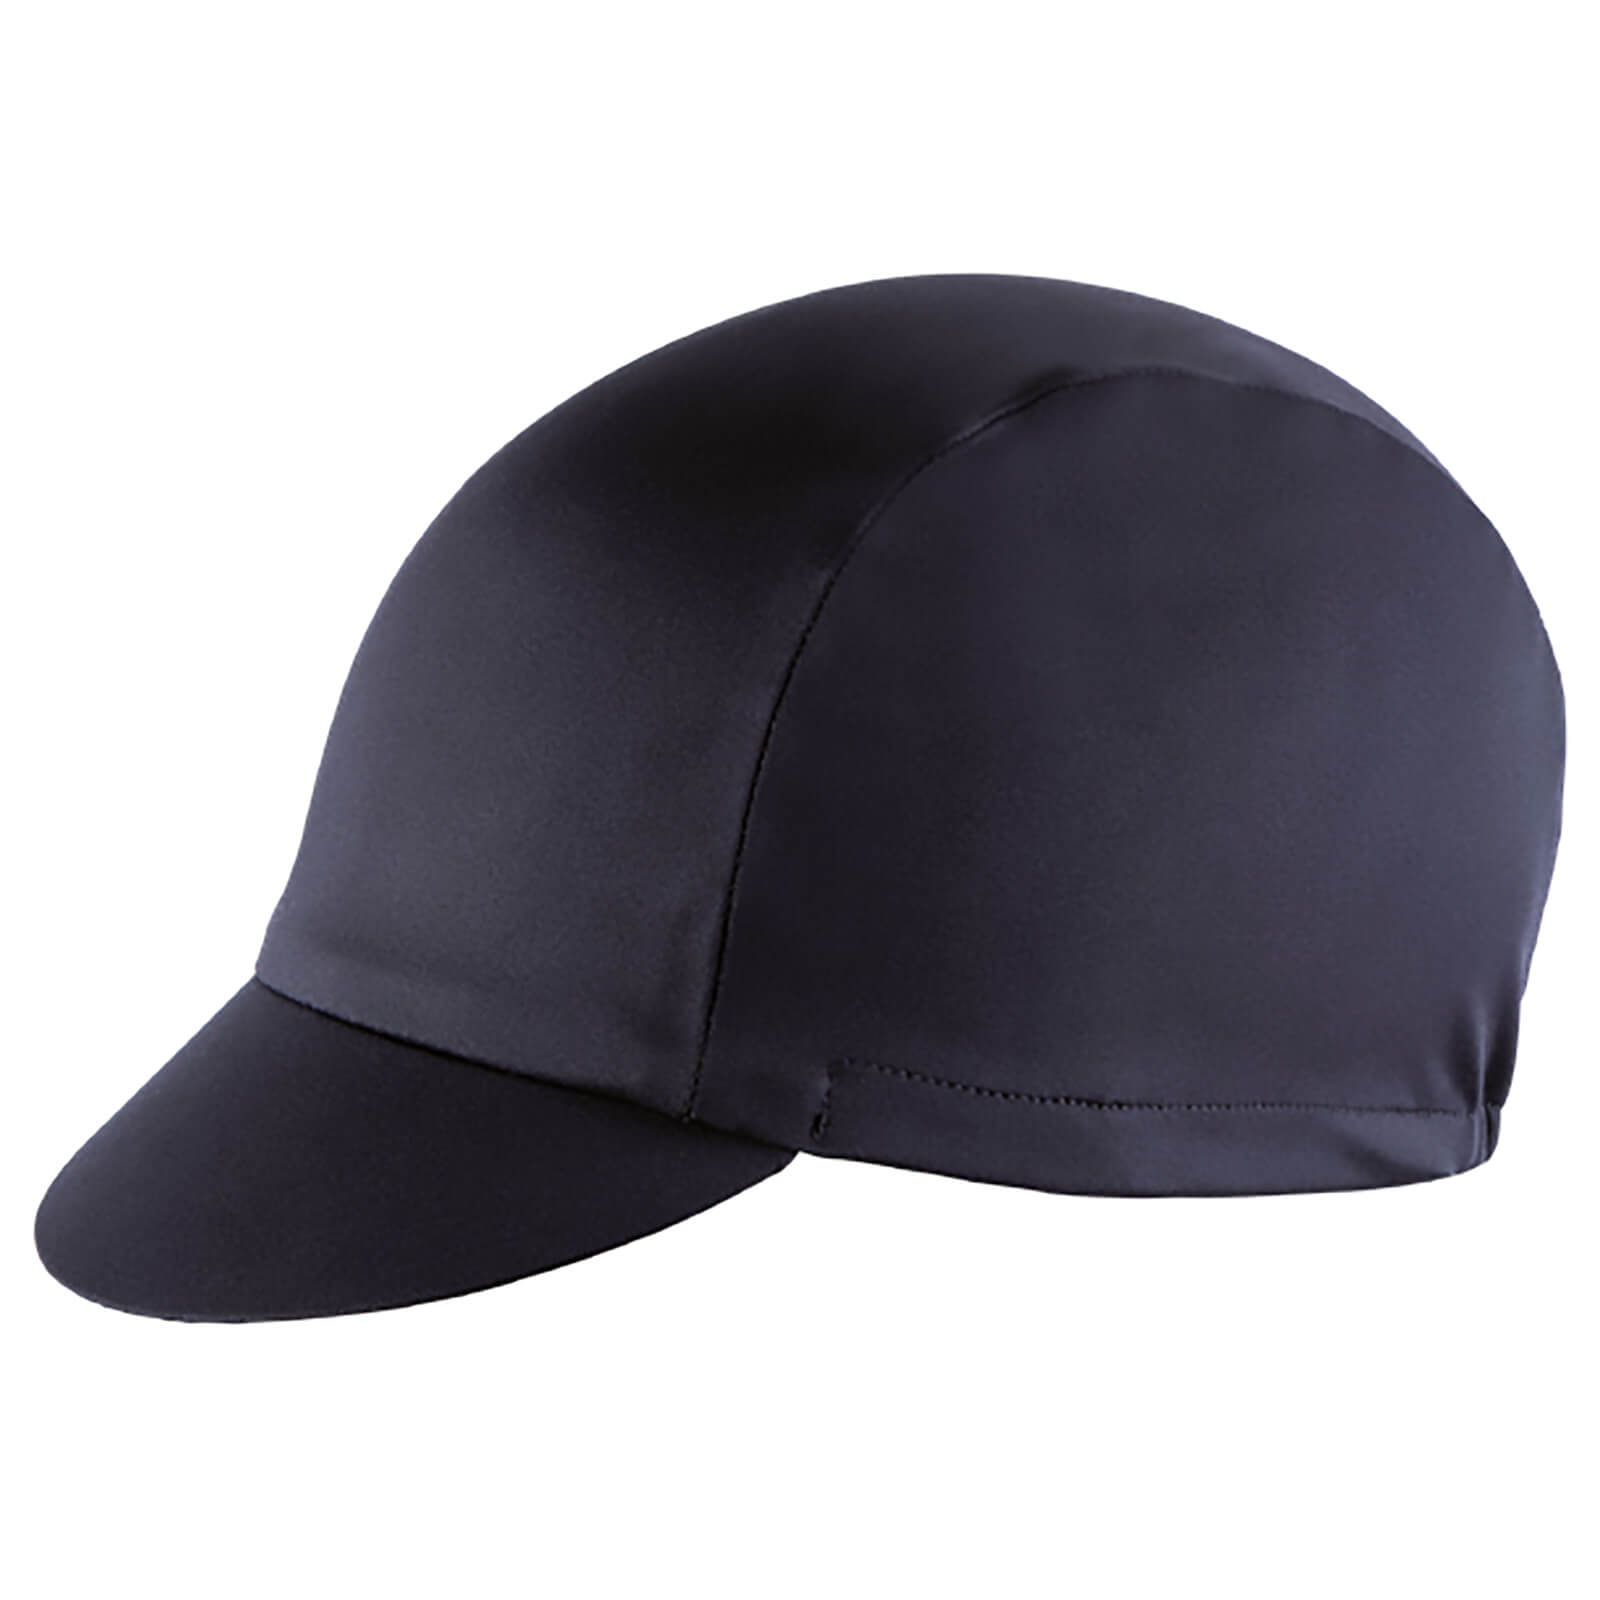 data-product-name | Headwear